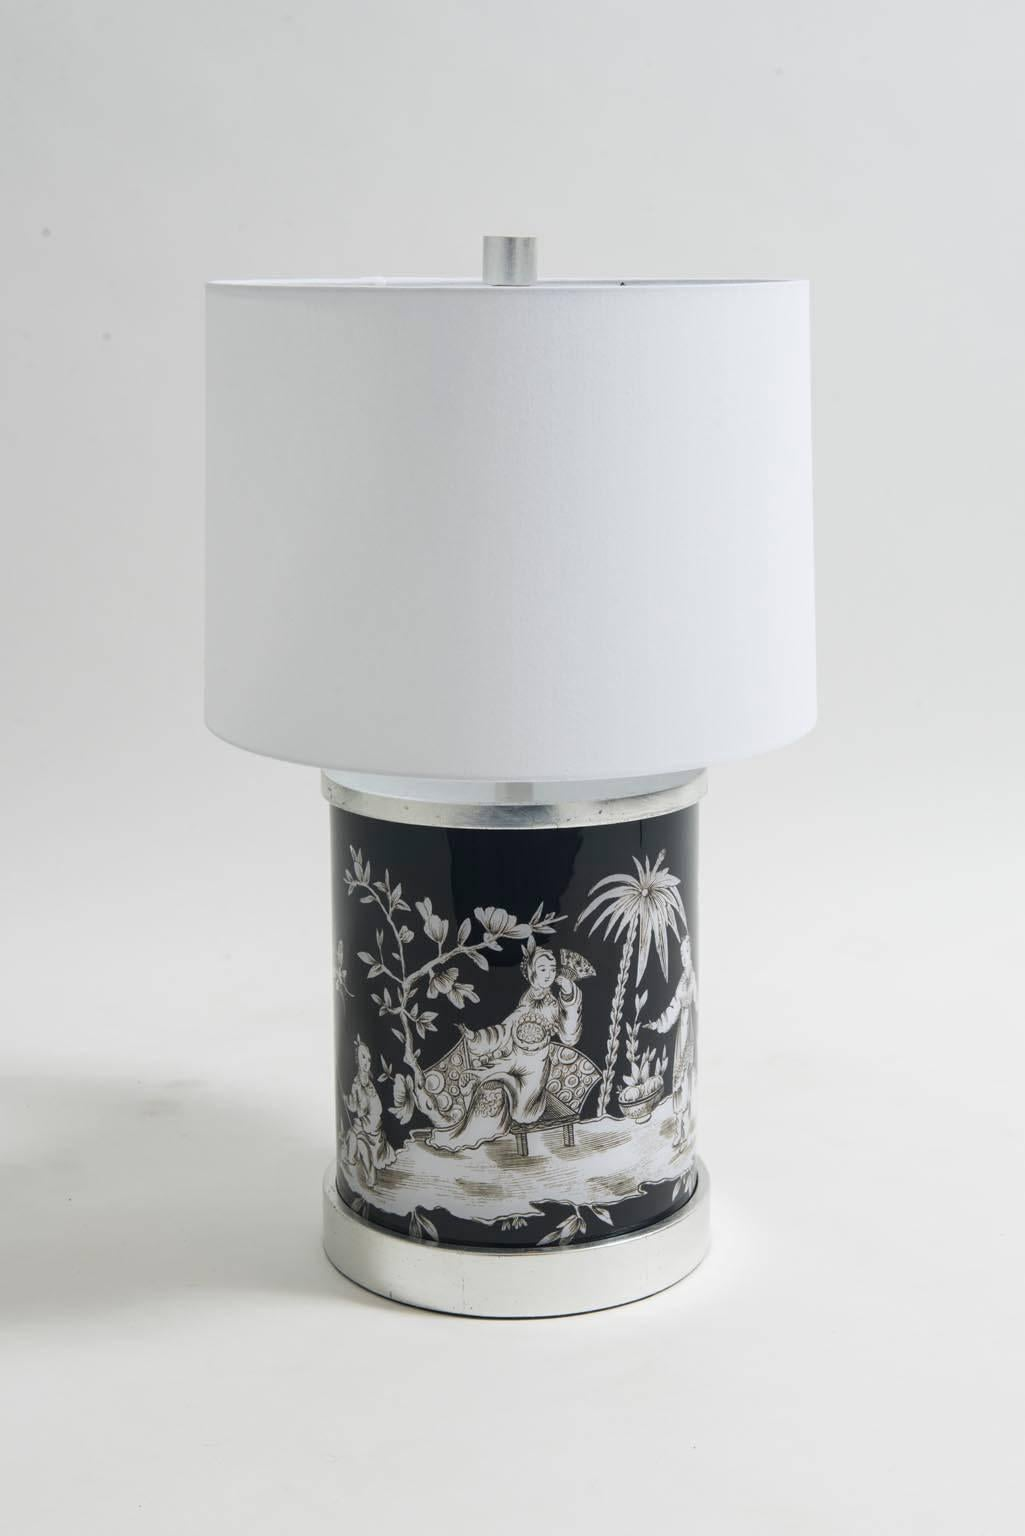 A Chic And Modern Chinoiserie Lamp From Liz Marshu0027s Old Money Collection.  This Beautiful Black